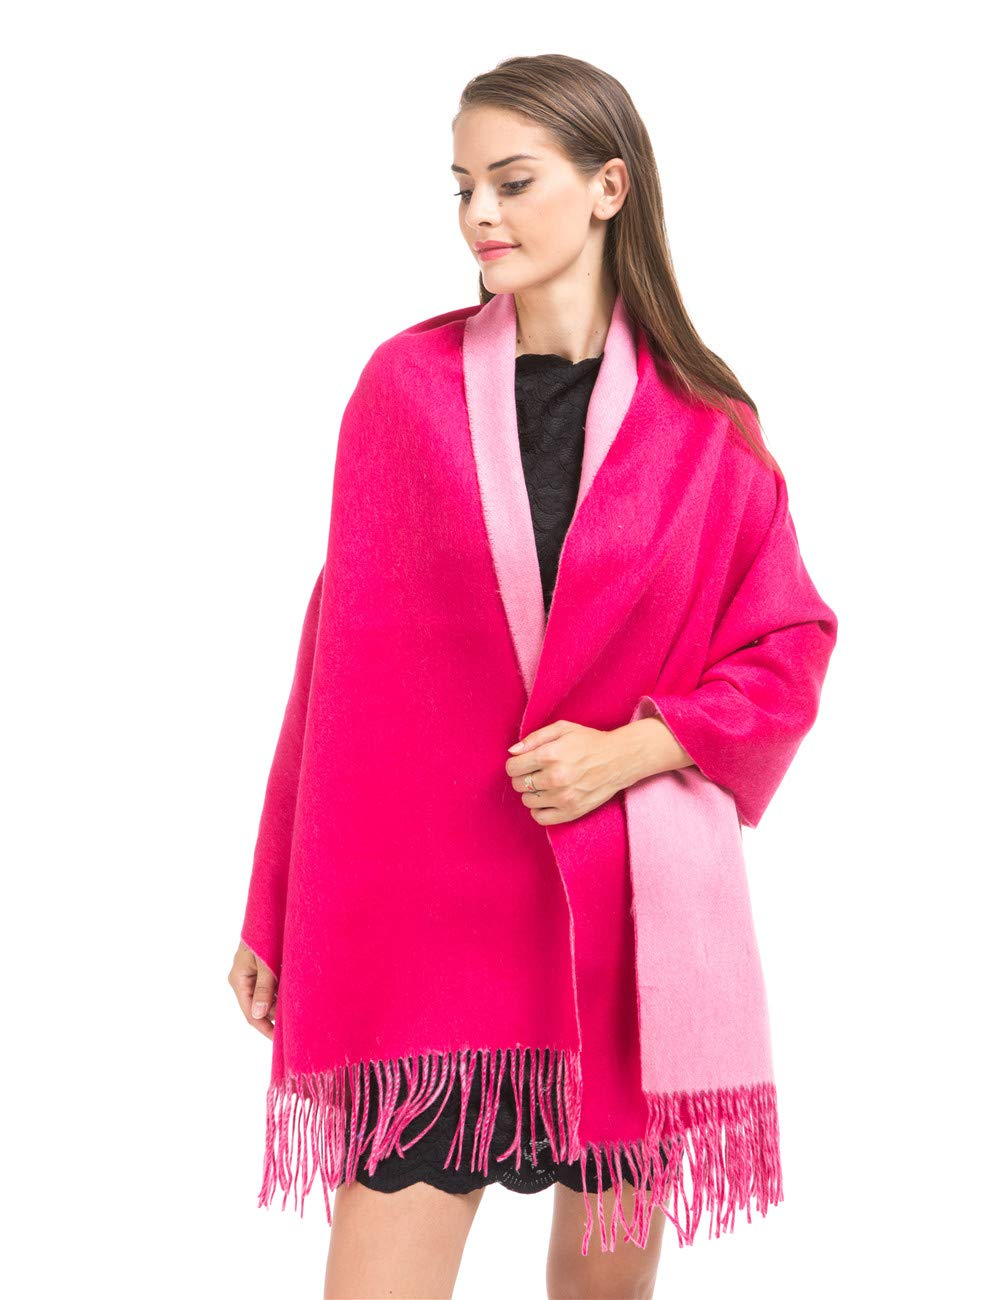 Cashmere Wrap Shawl Stole for Women Winter Extra Large(79'' X 28'') Men Solid Lambswool Pashmina Scarf with Gift Box(Double-Faced Hot Pink)